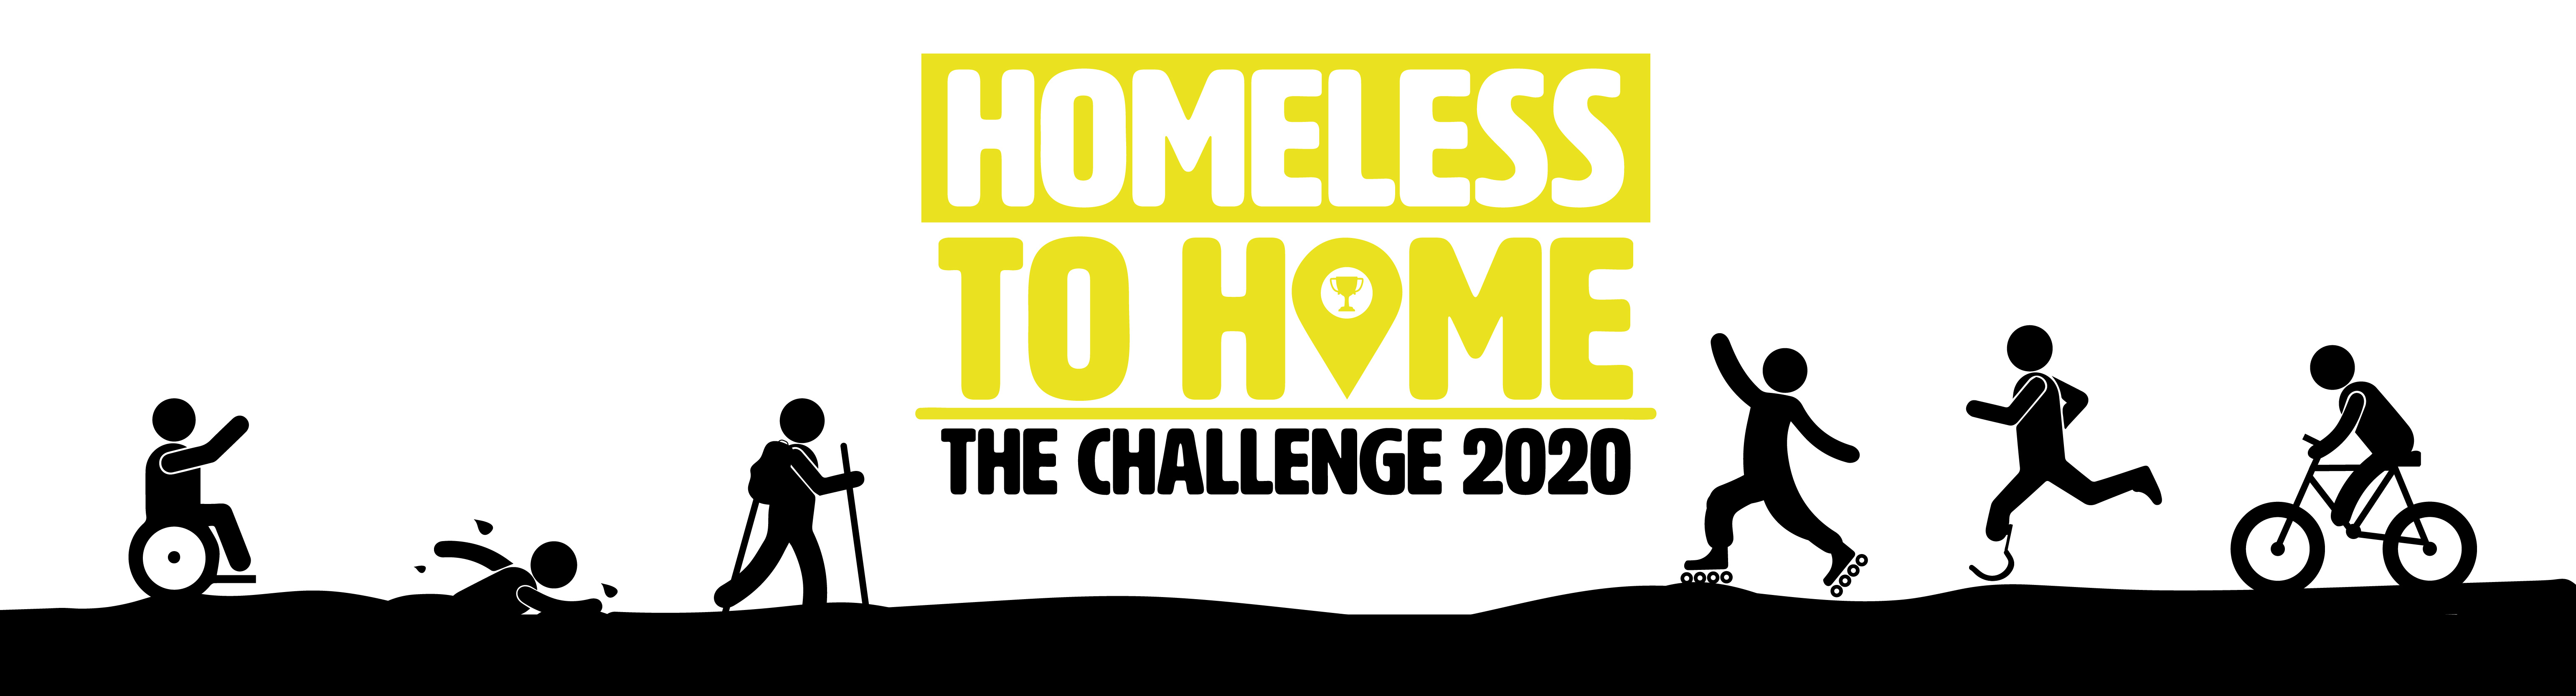 Homeless to Home Challenge banner